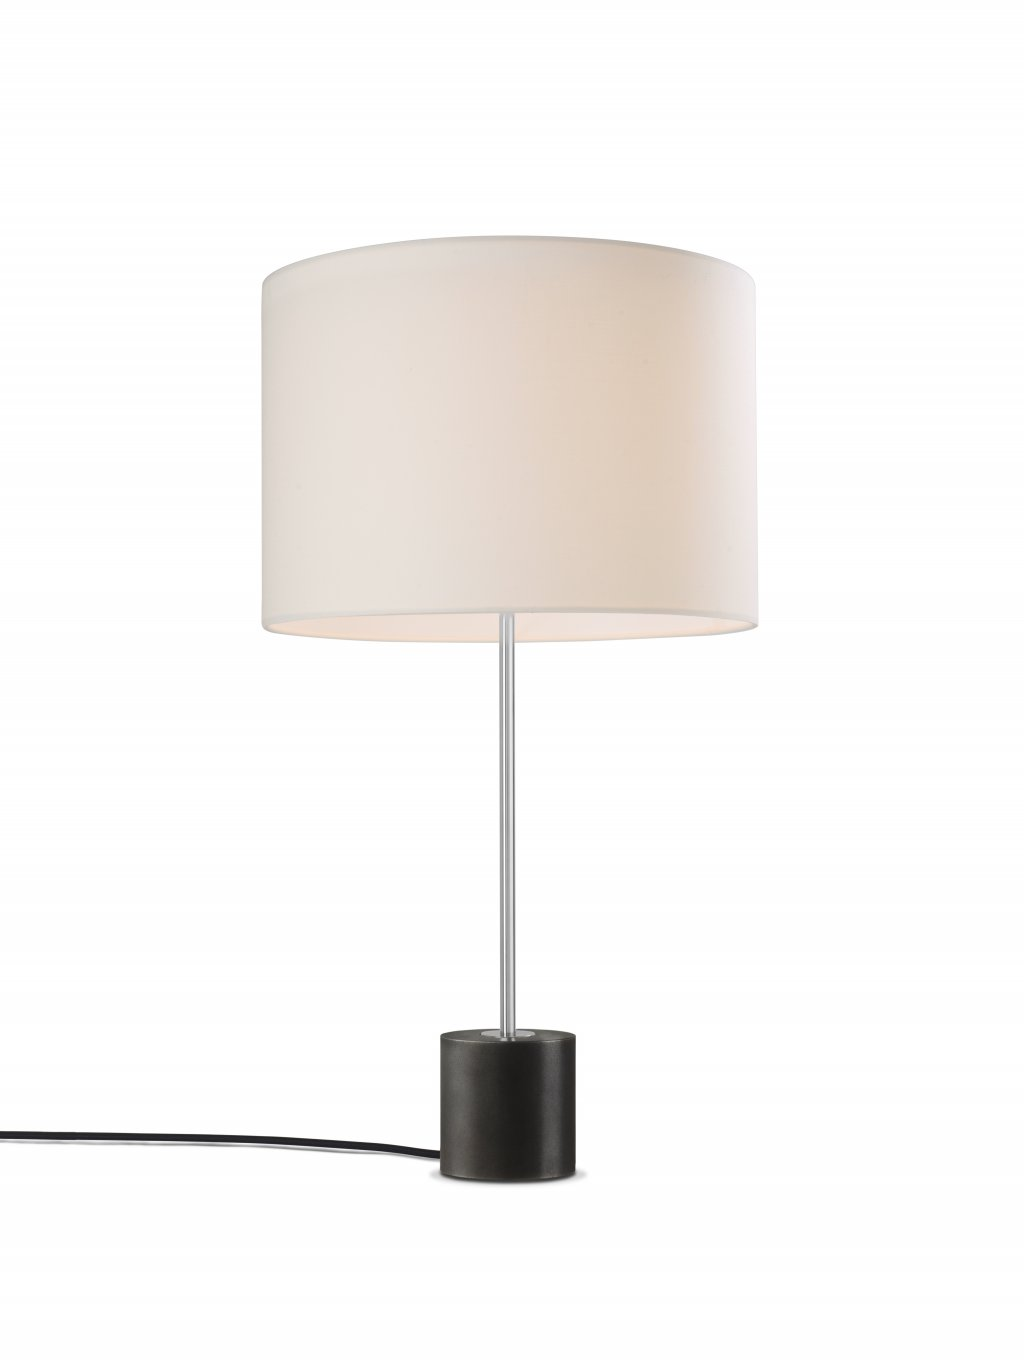 Kilo Table Lamp, 1959